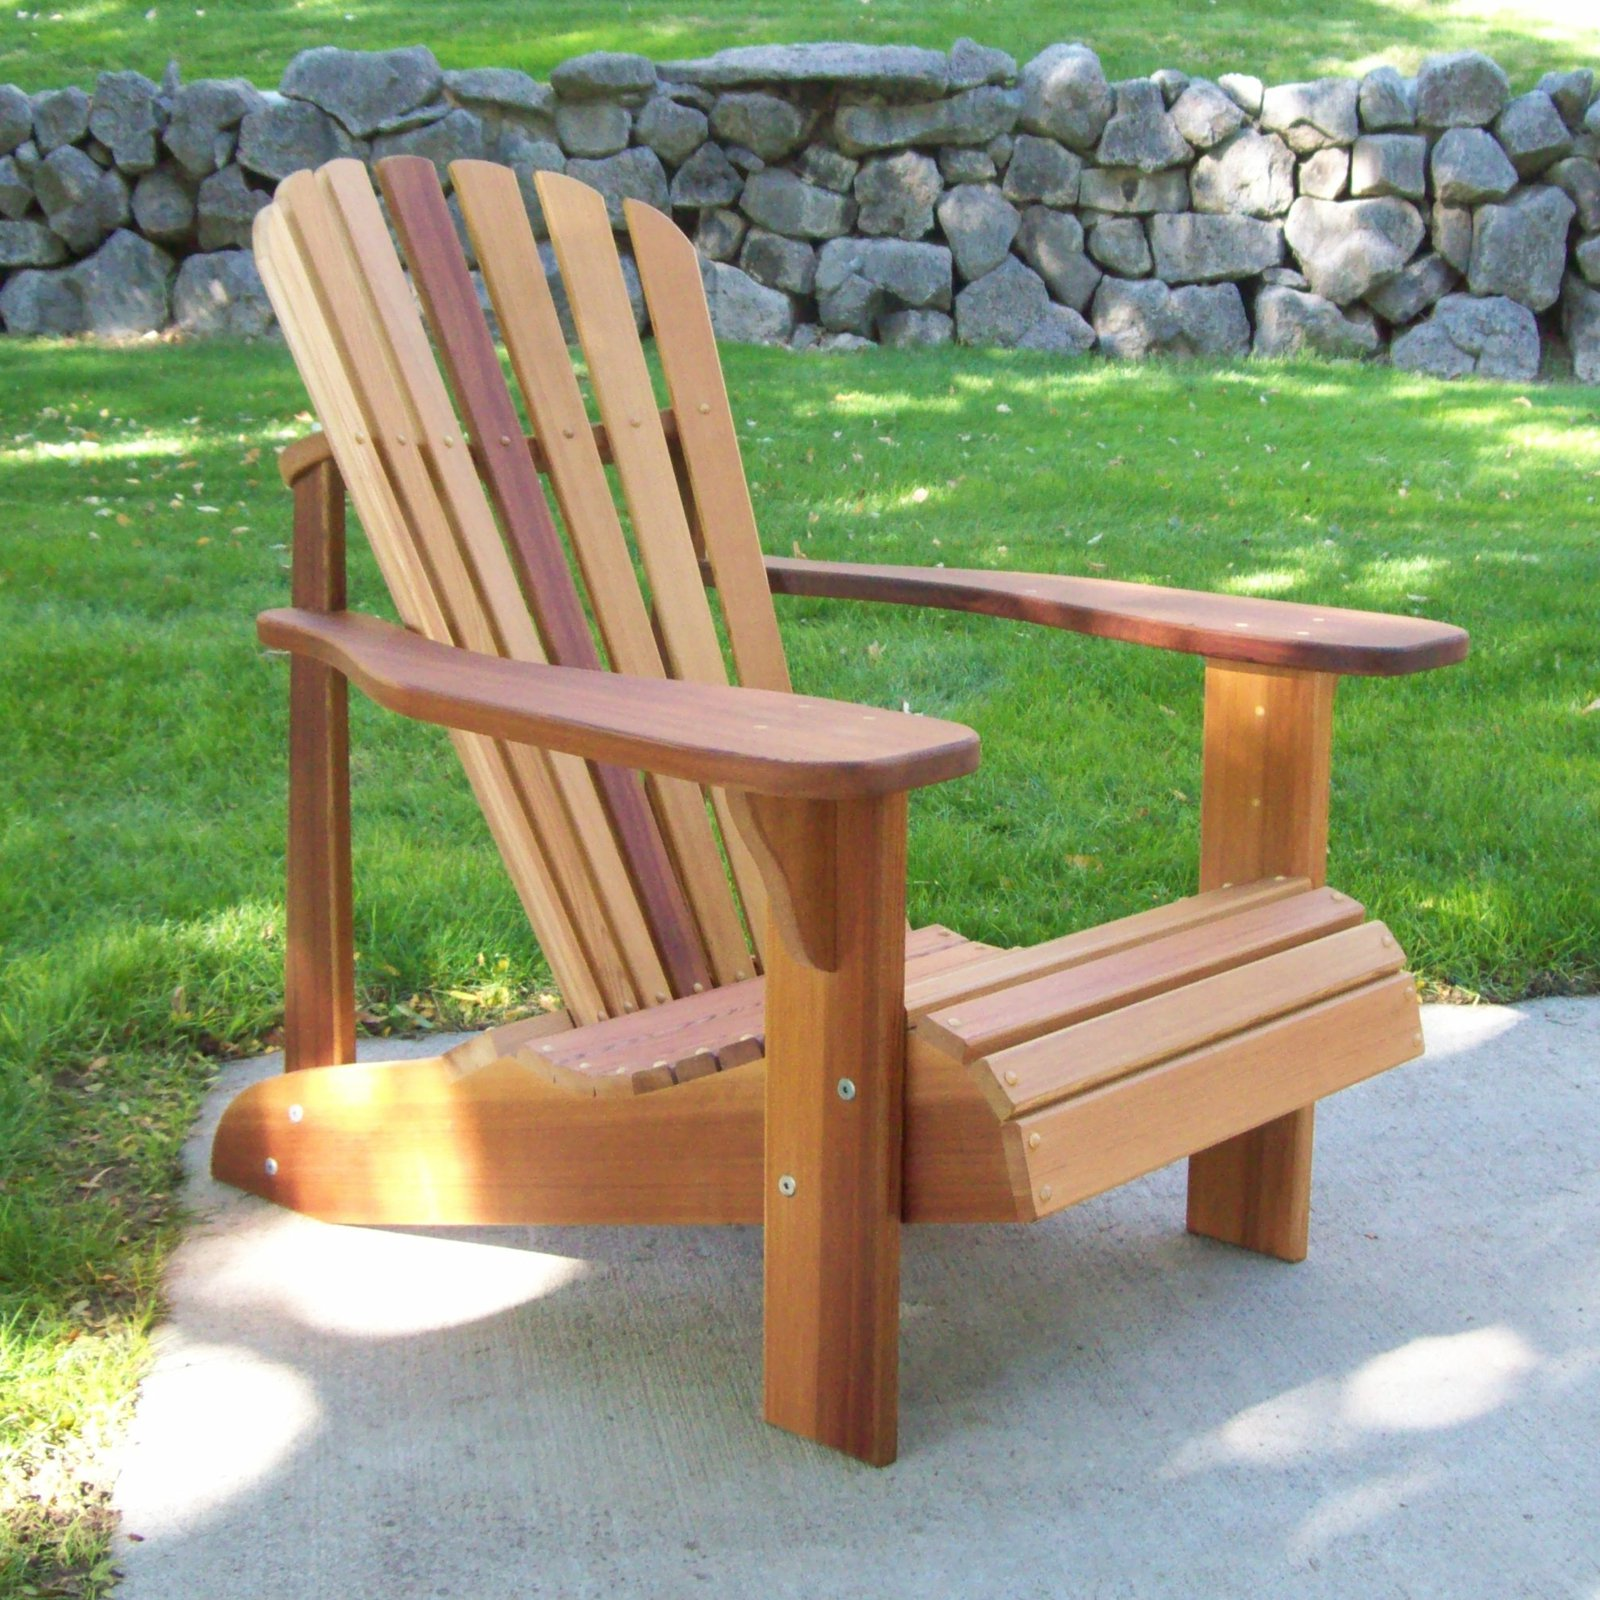 Wood Country T&L Adirondack Chair